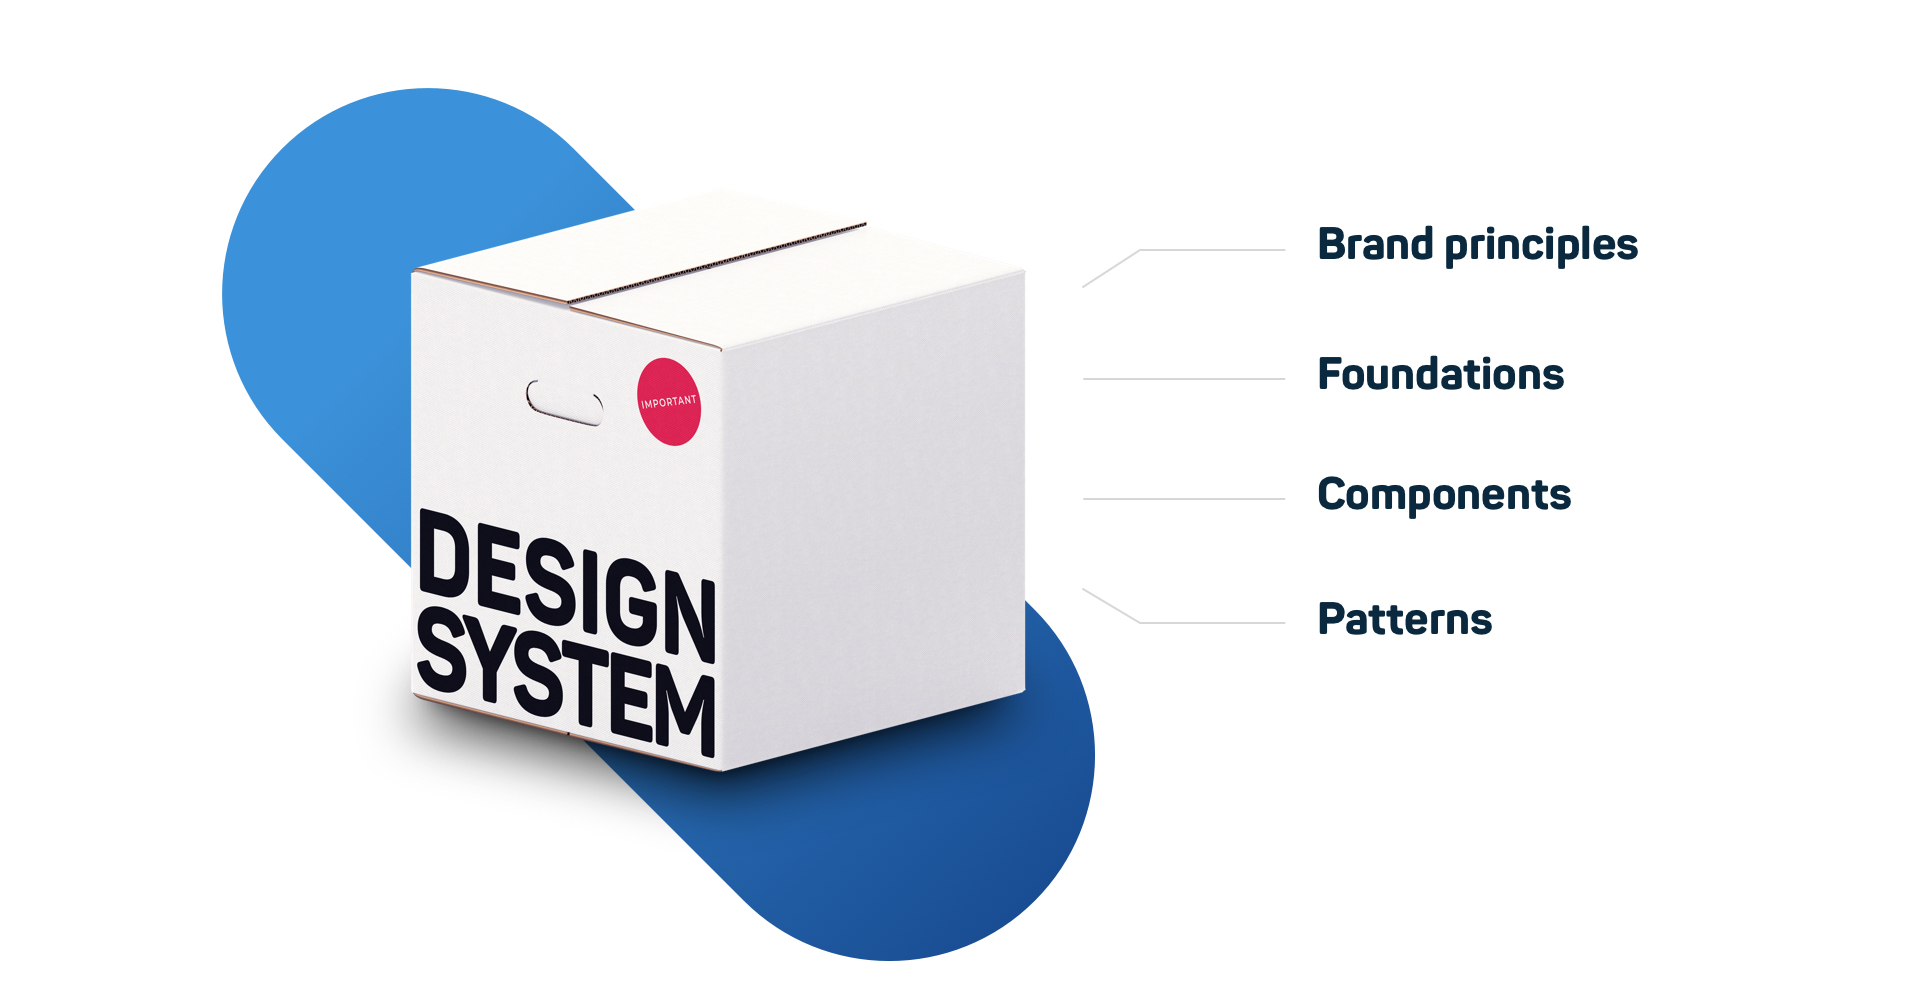 Four core parts of an effective design system